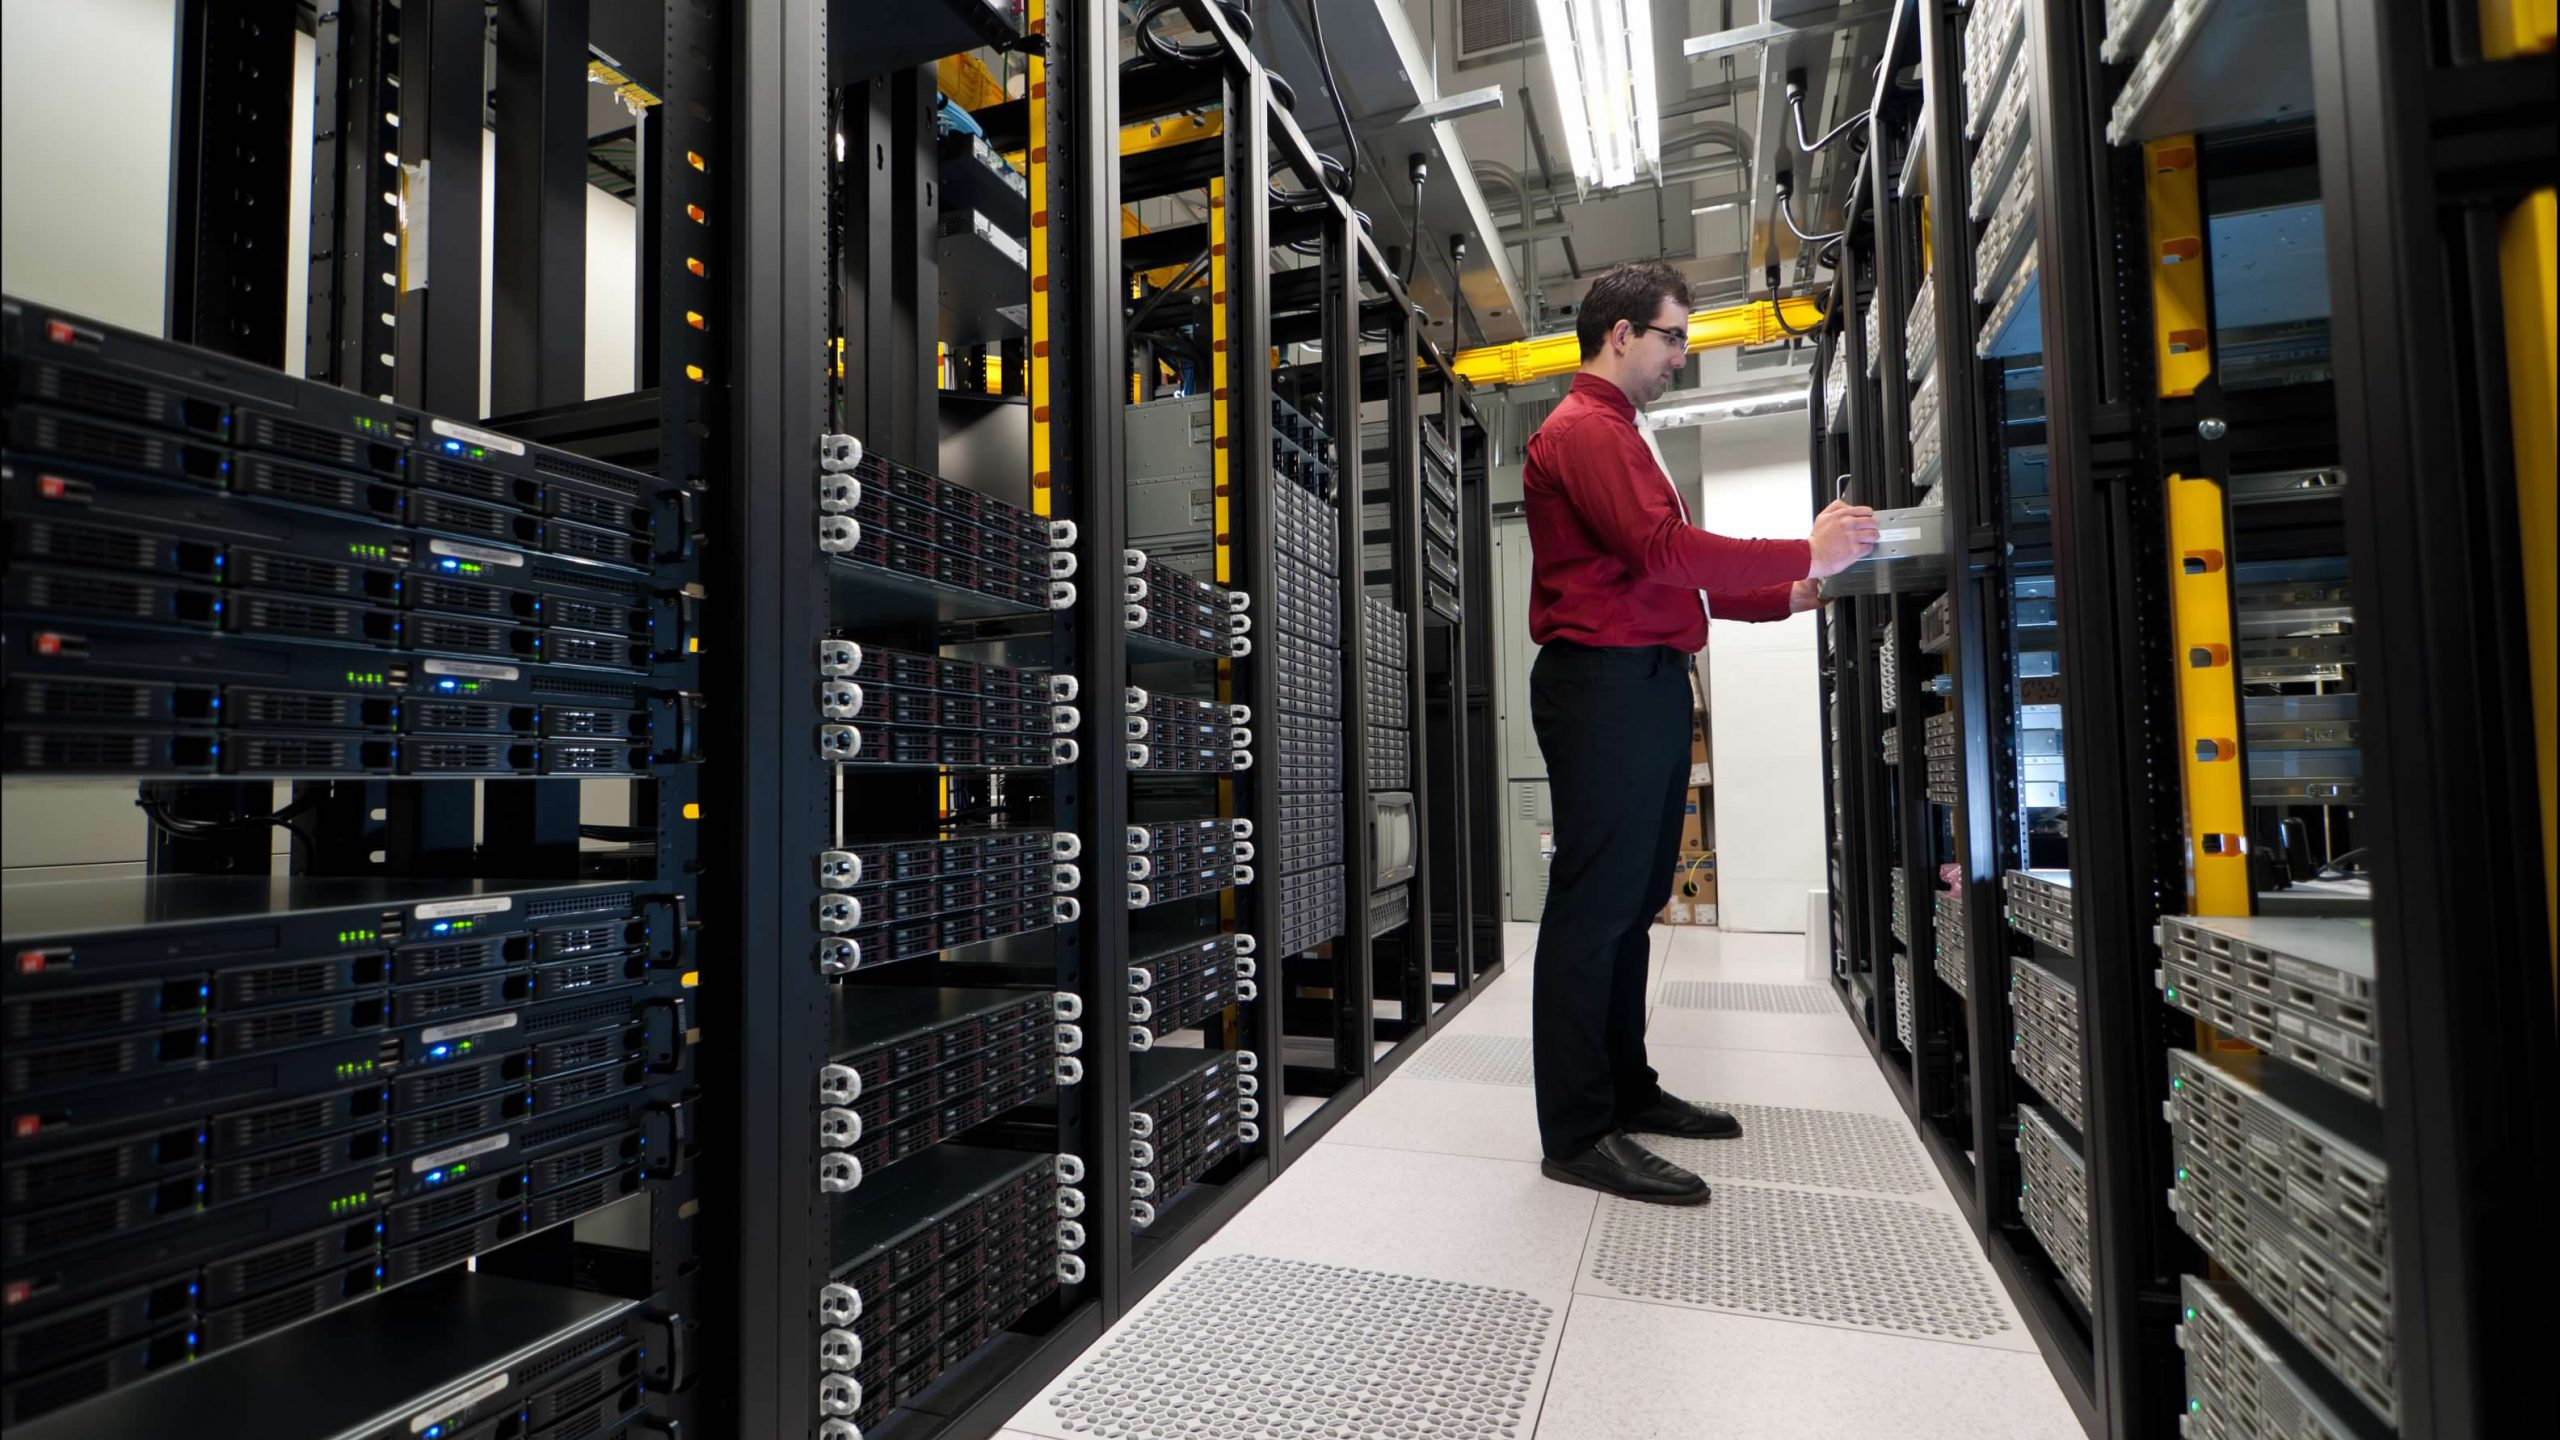 male tech inserting a new server rack into a cabinet in a data center